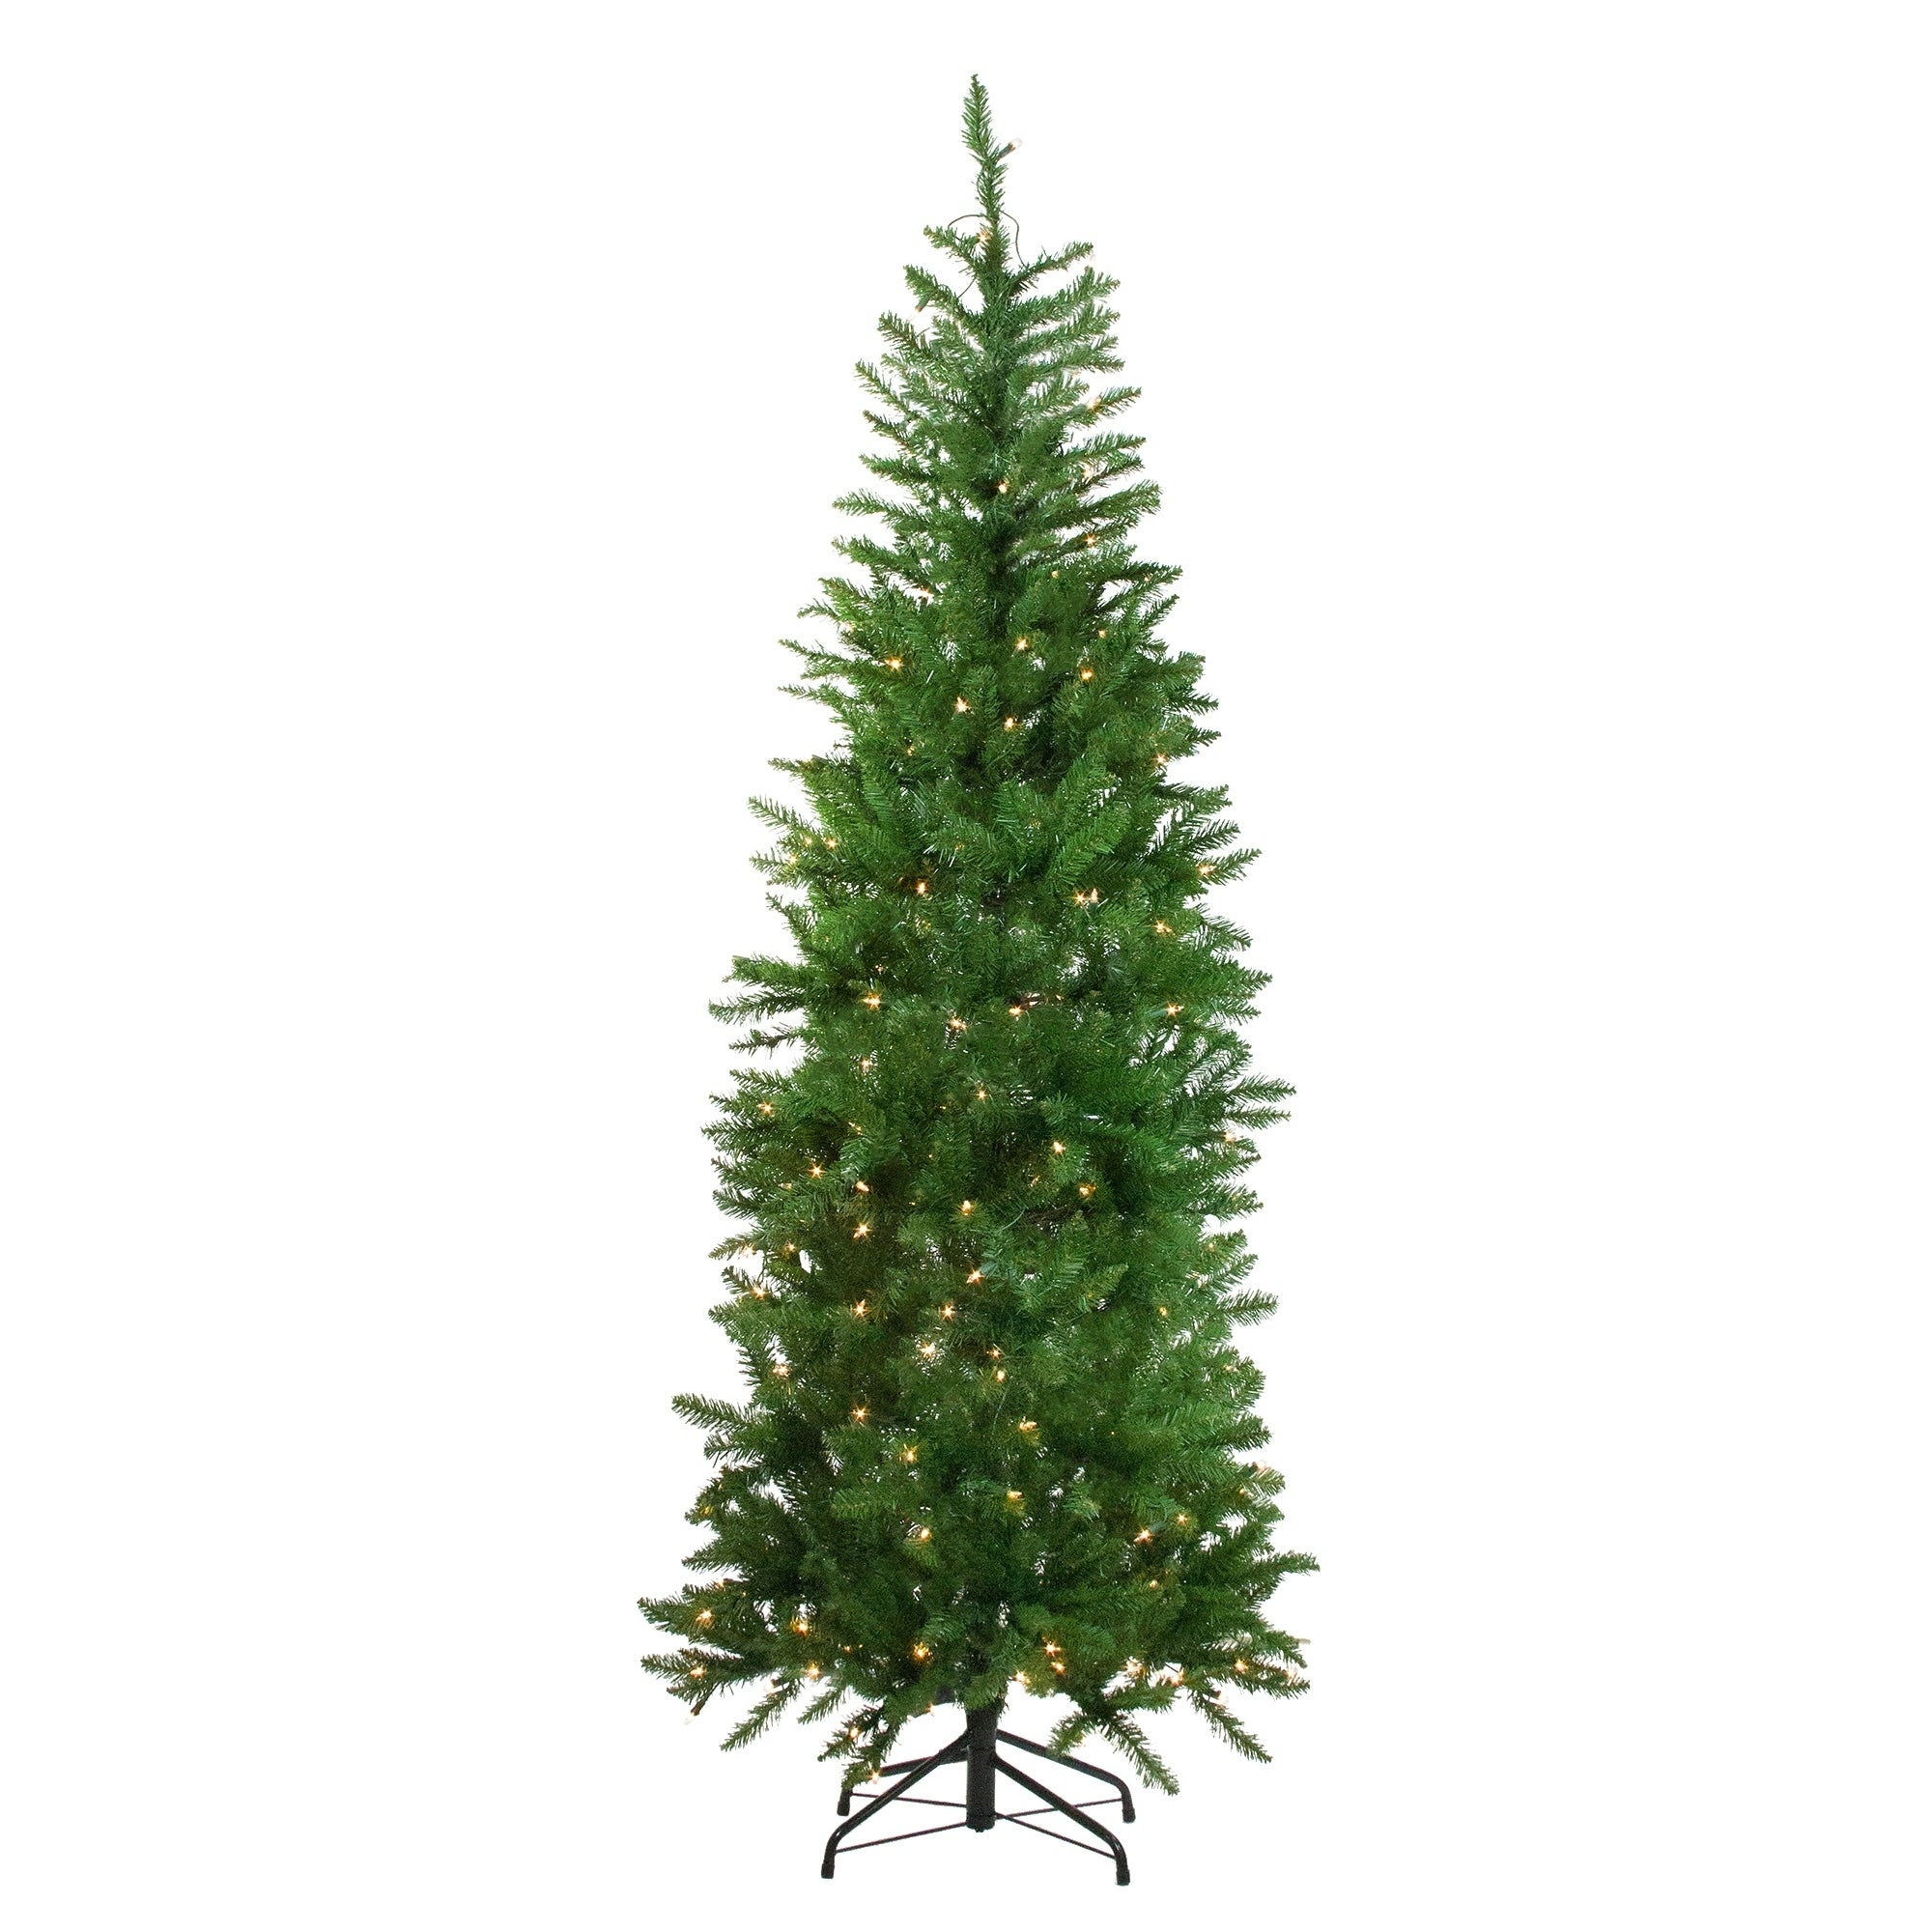 7 5 X 30 Pre Lit White River Fir Artificial Pencil Christmas Tree Clear Lights